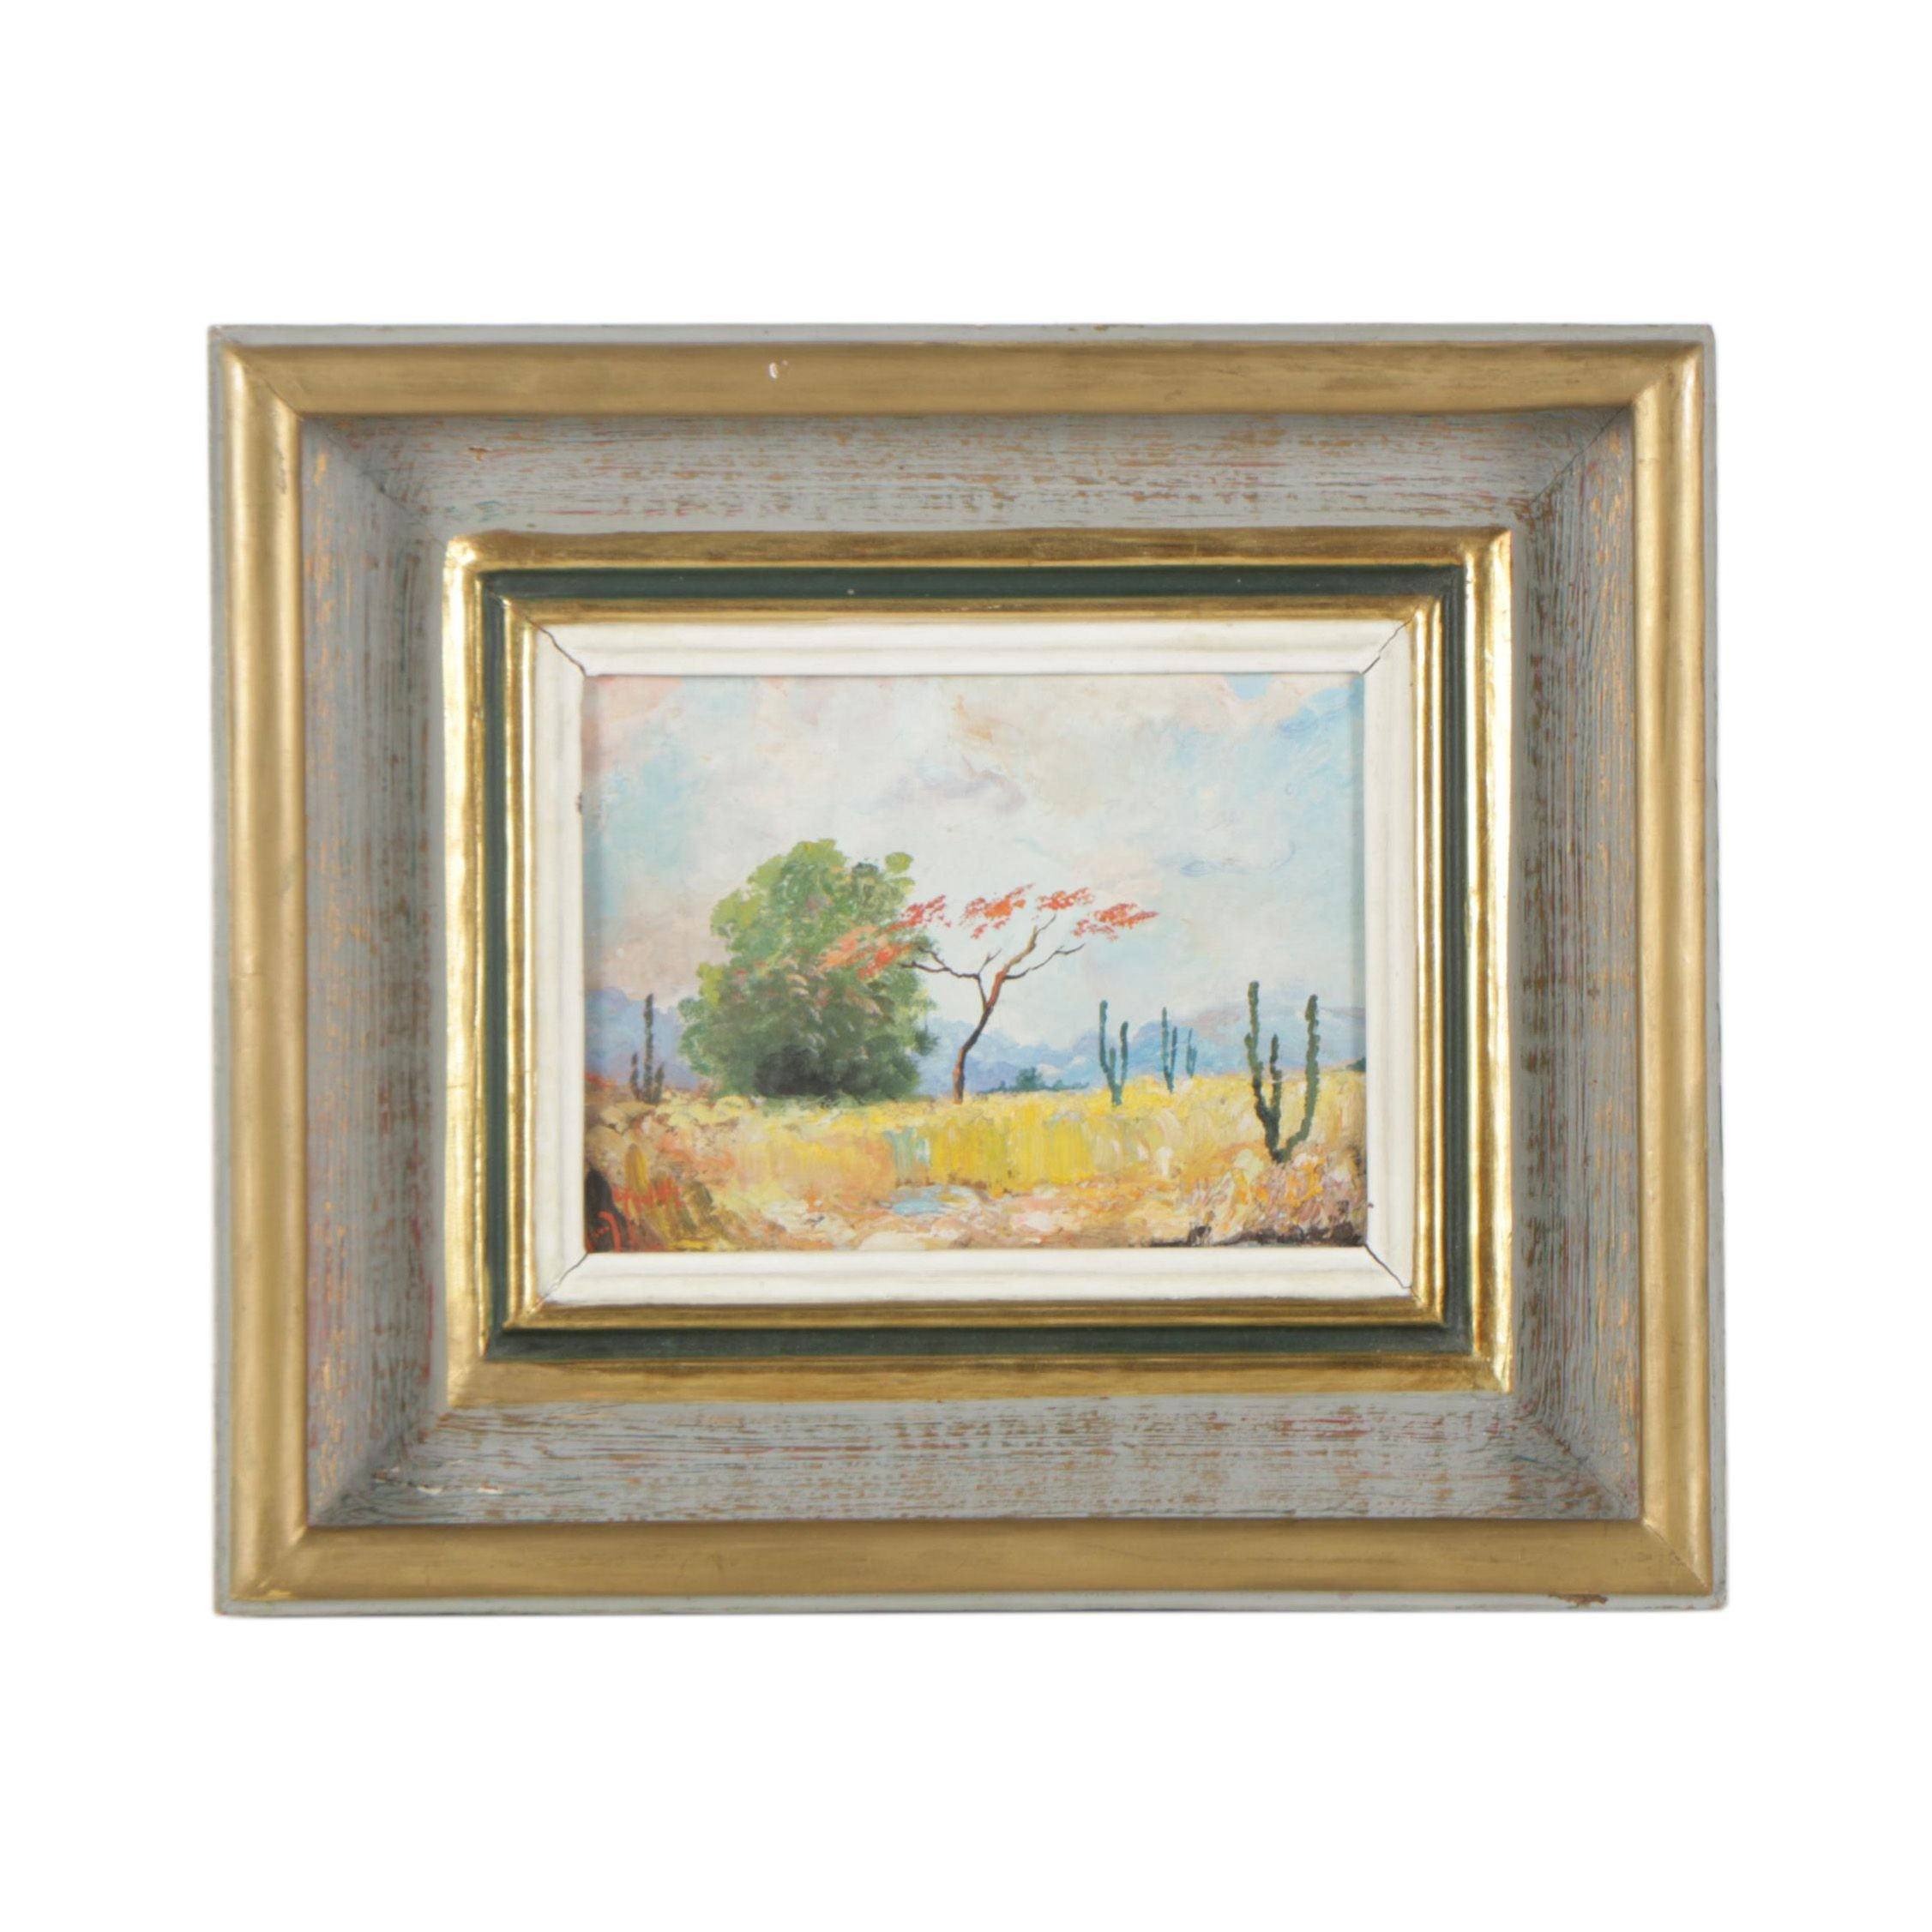 Oil Painting of a Western Landscape